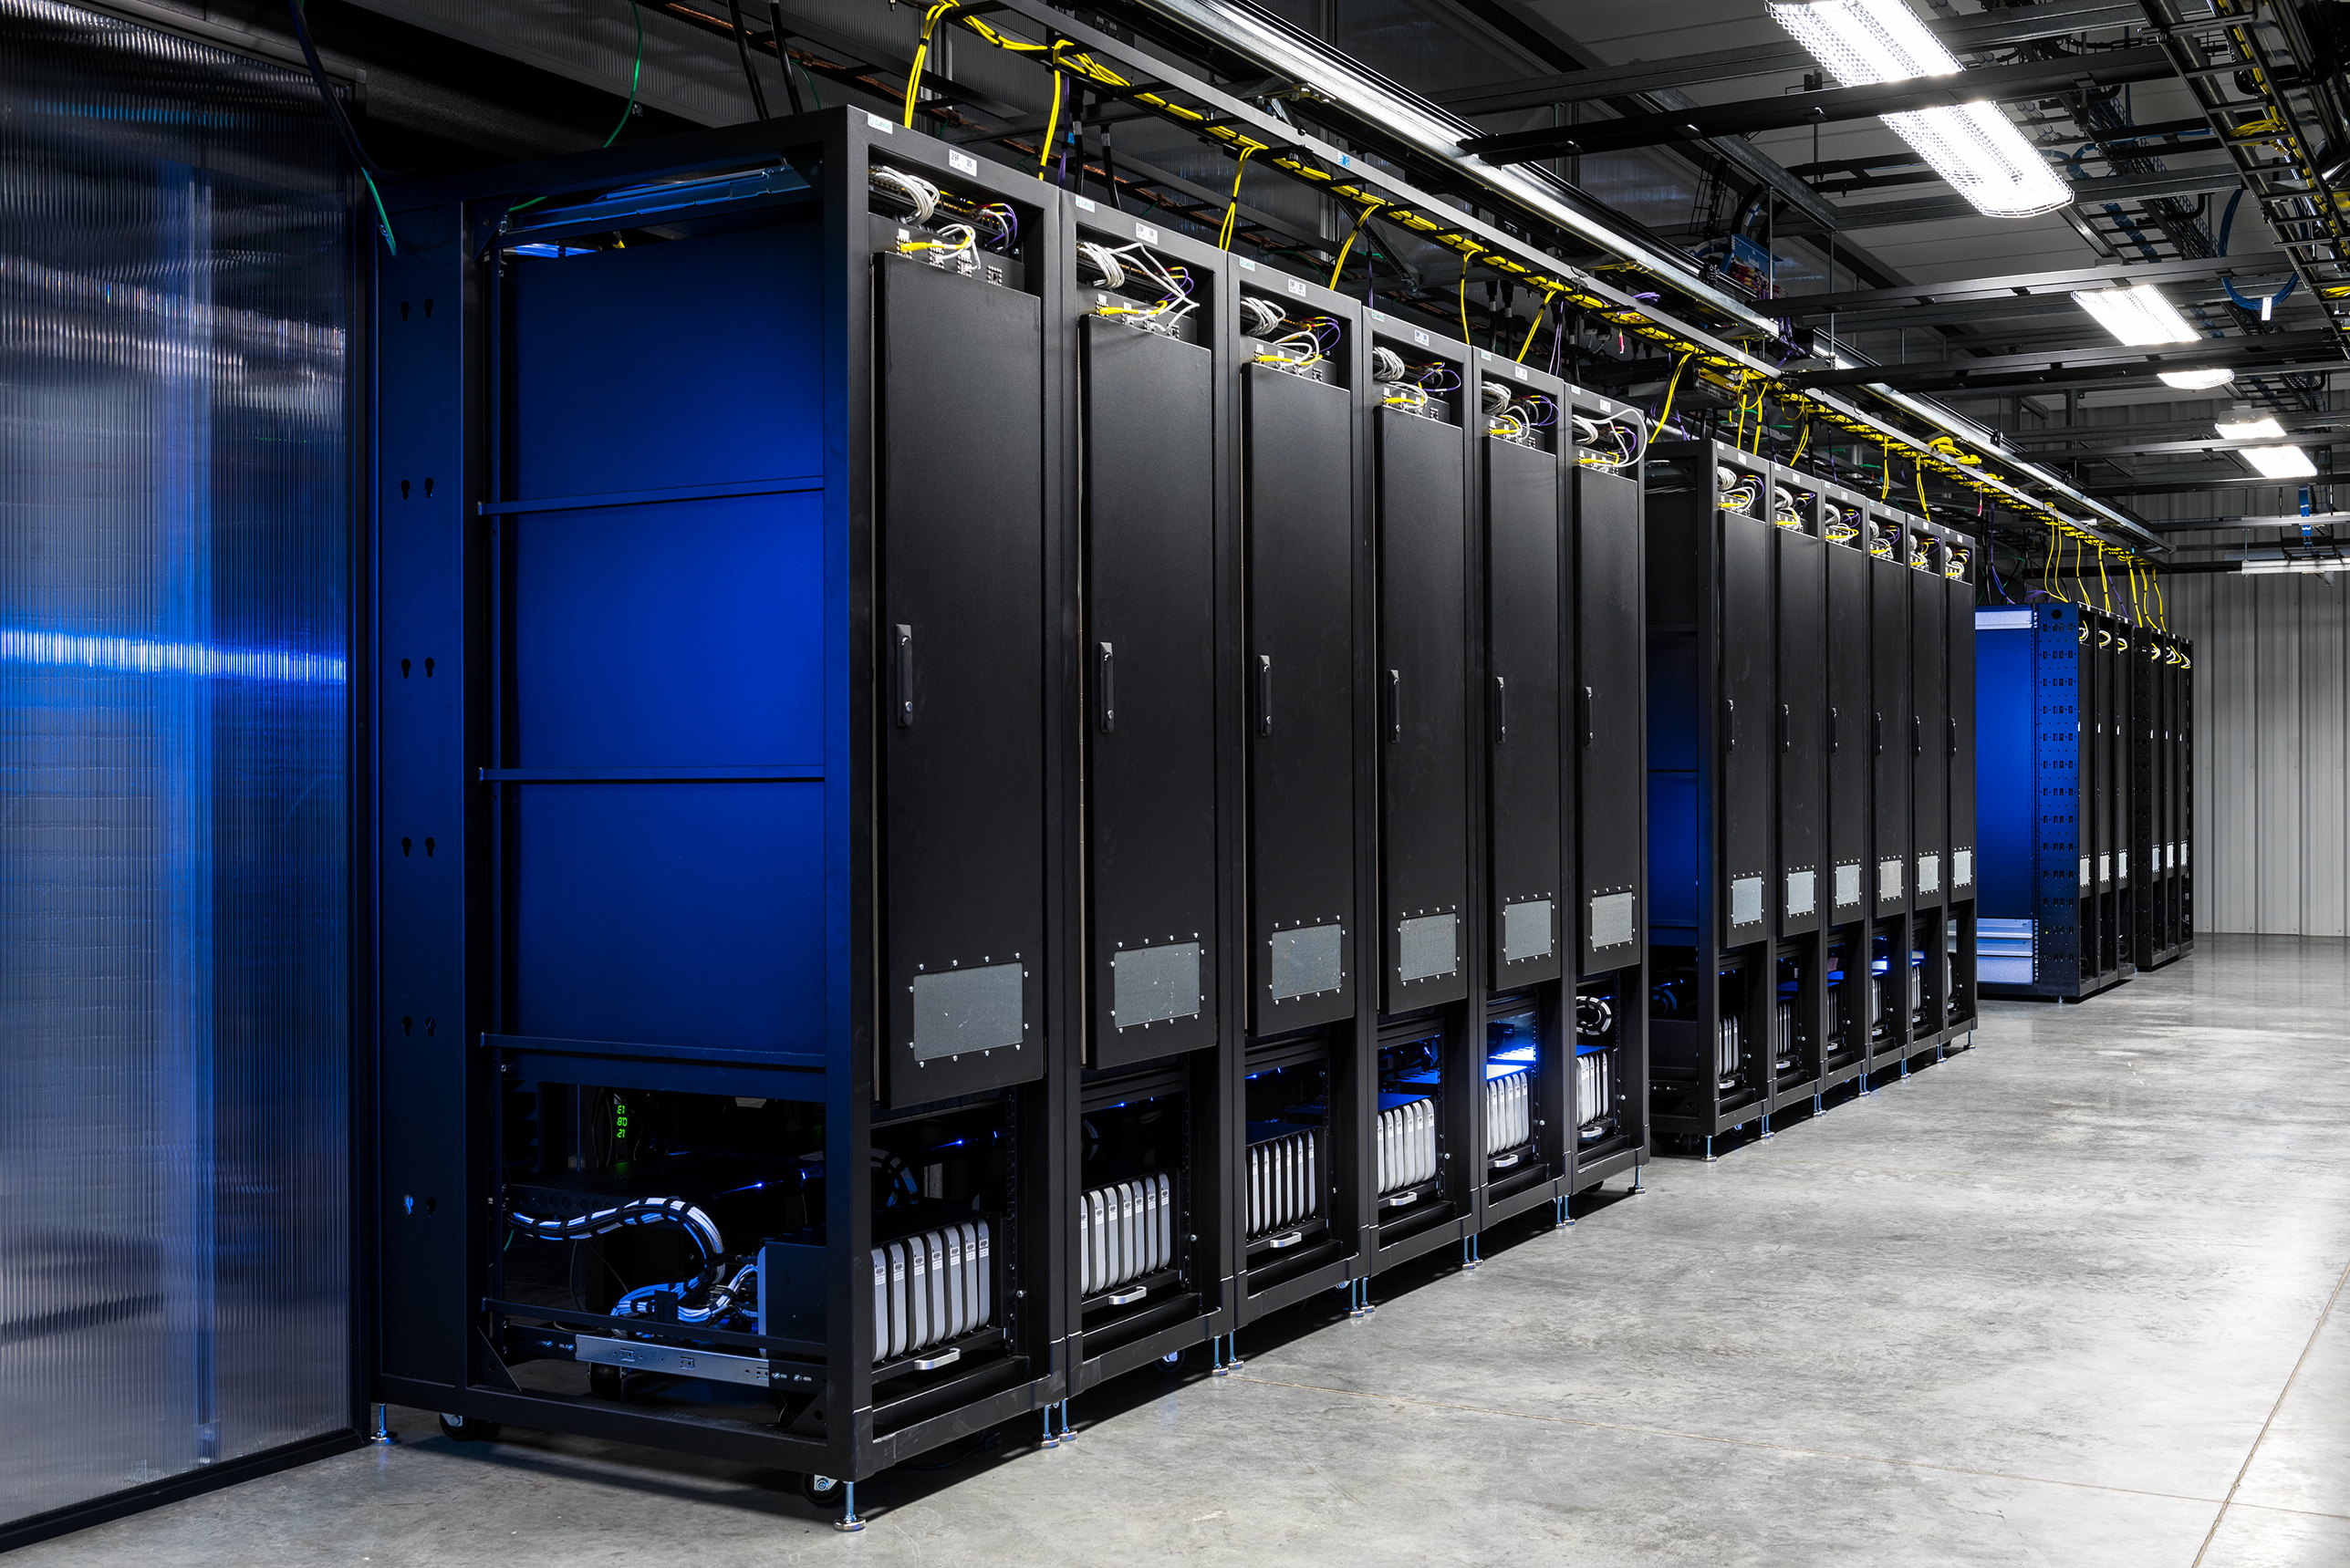 Facebook S Oregon Data Center Has A Lab With Nearly 2 000